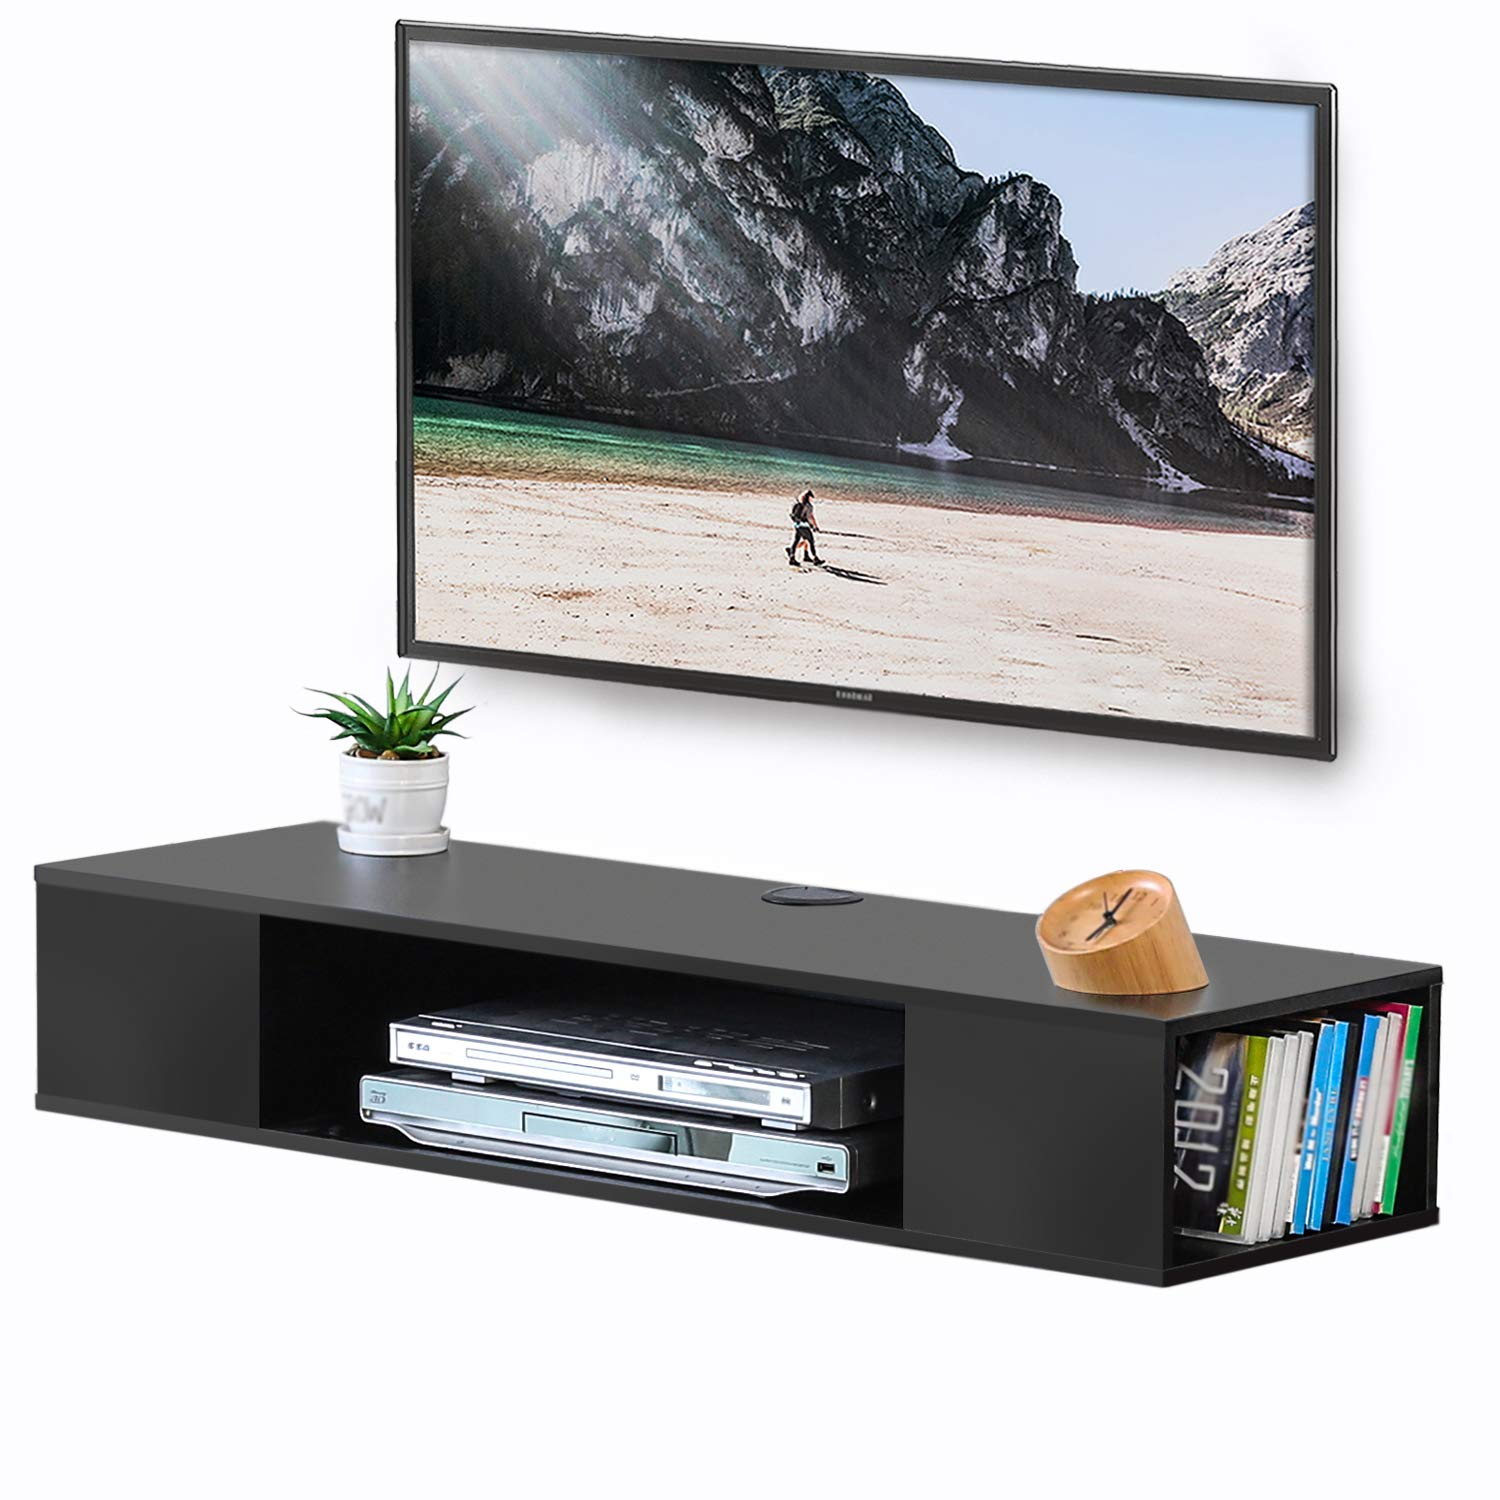 FITUEYES Black Wall Mounted Media Console Floating TV Stand Component Shelf DS210003WB by FITUEYES